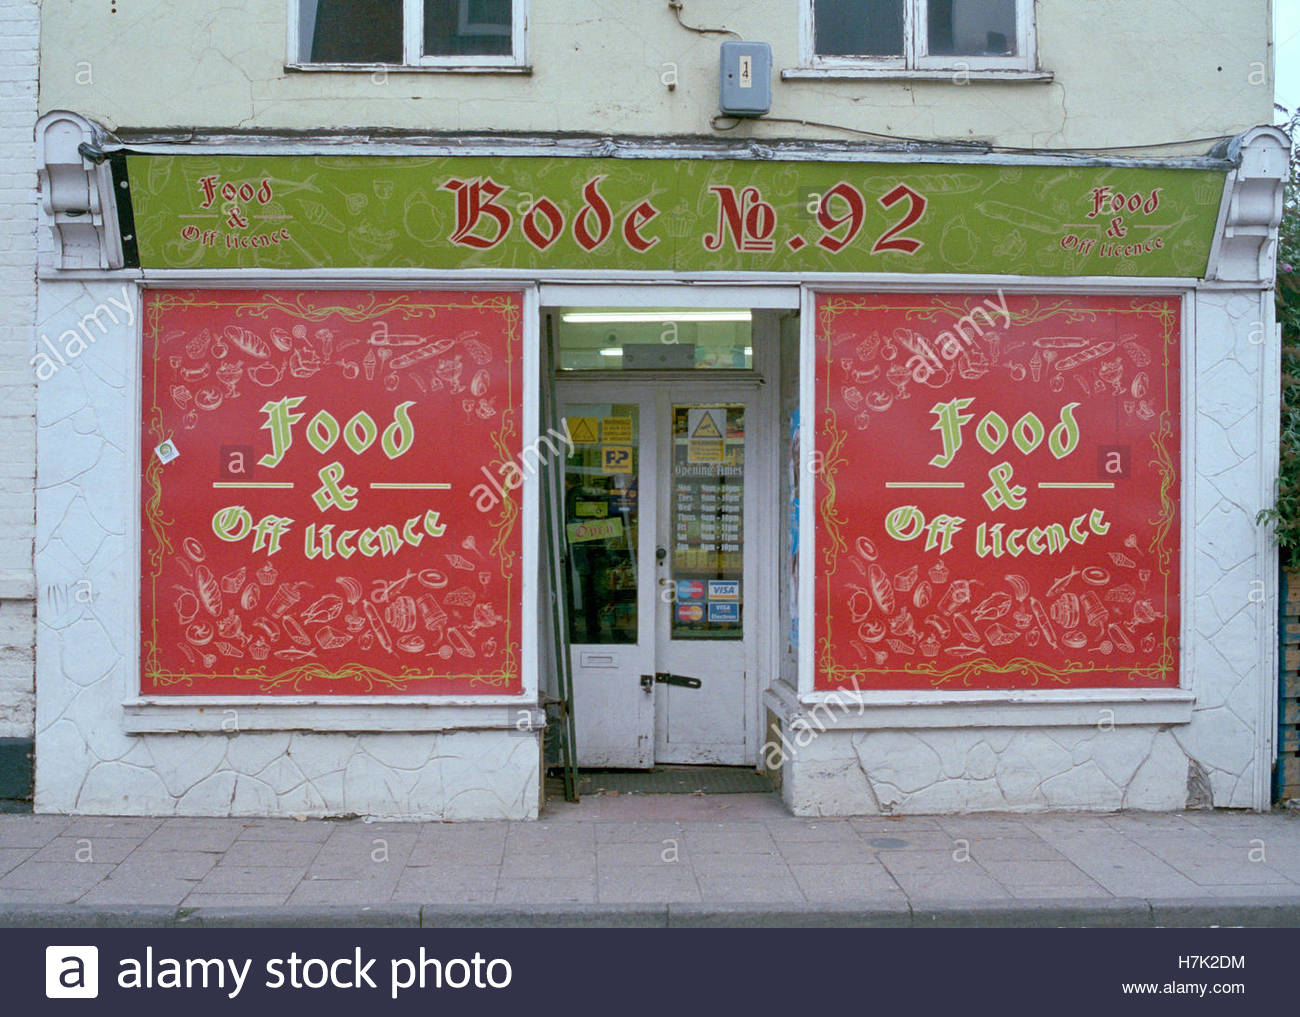 Bode no 92 European food store in Boston Lincs & Bode no 92 European food store in Boston Lincs Stock Photo ...